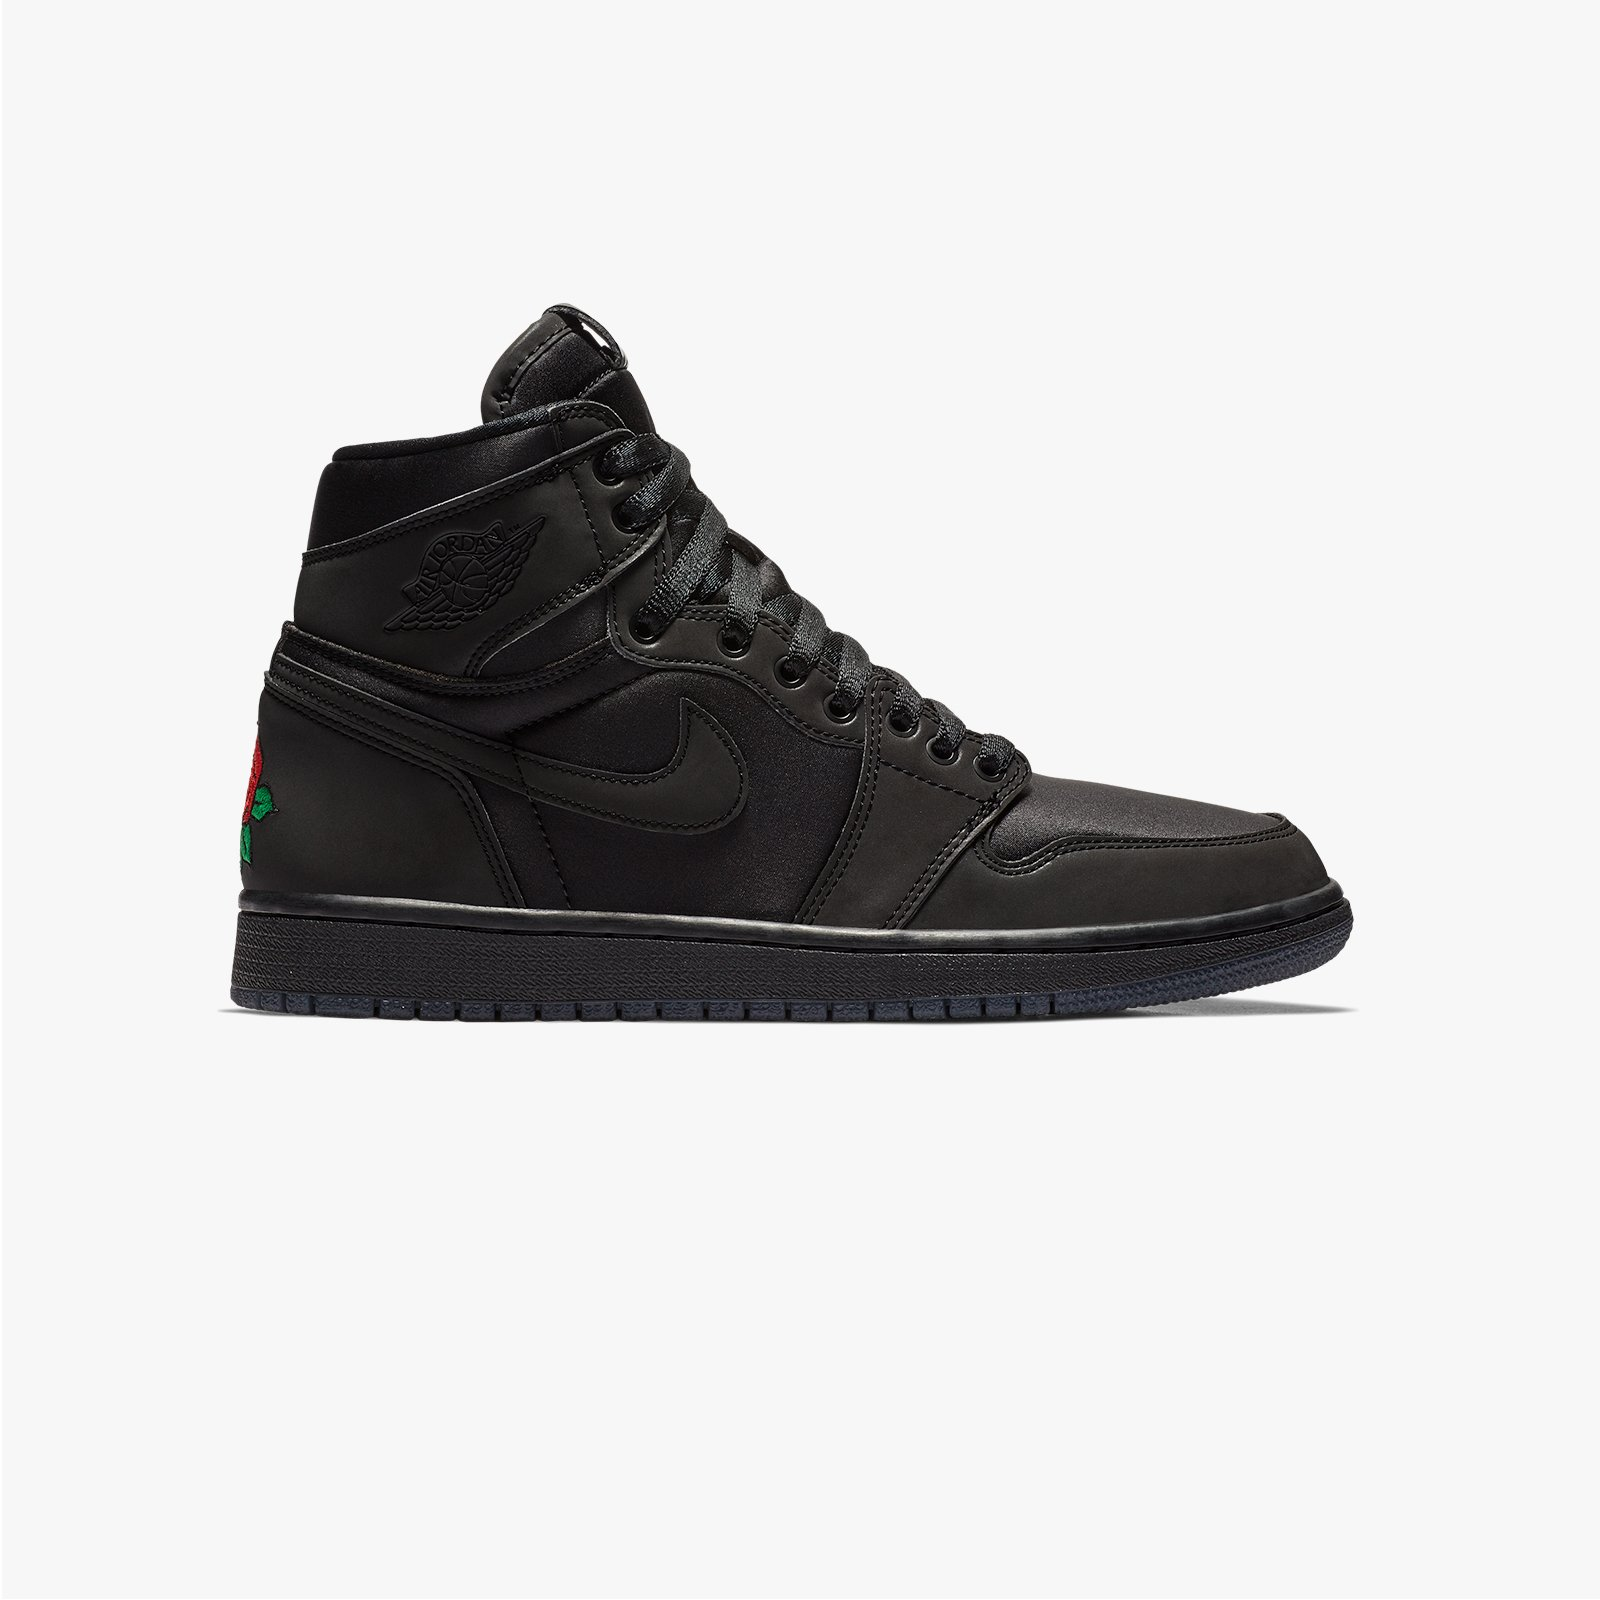 026e62df76d Jordan Brand Wmns Air Jordan 1 Retro High - Bv1576-001 ...